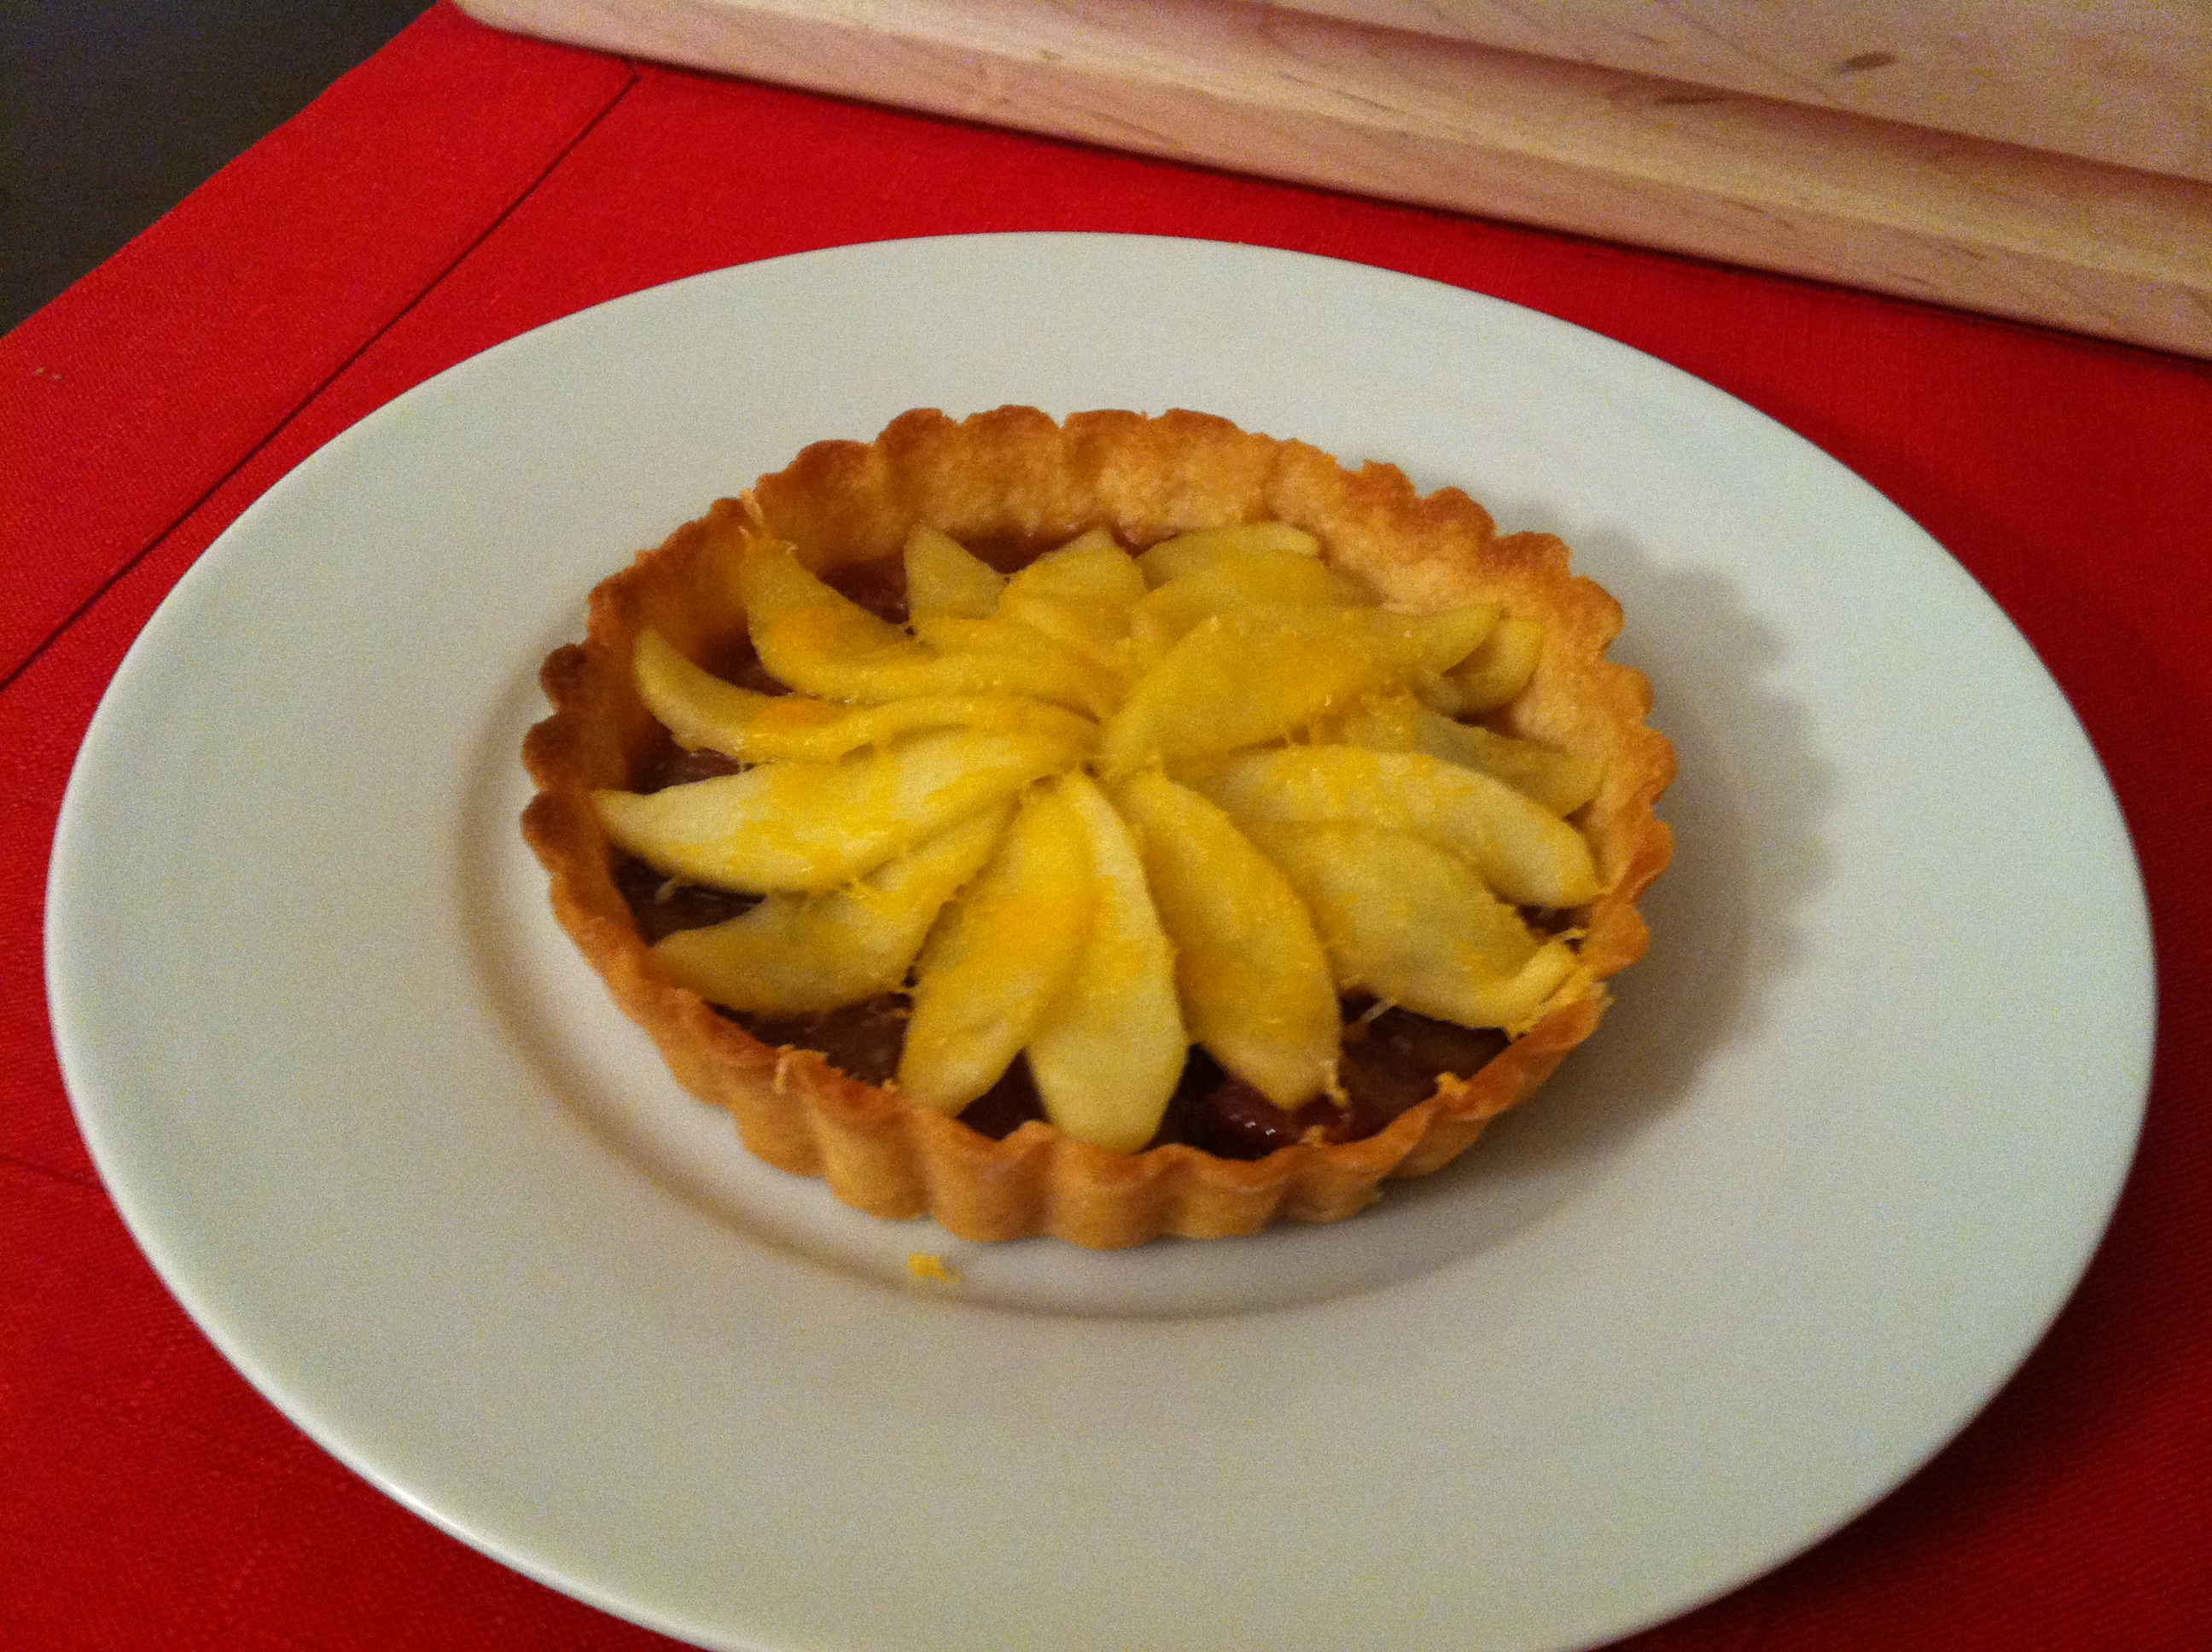 ABC Tart: Apple, Bacon and Cheddar